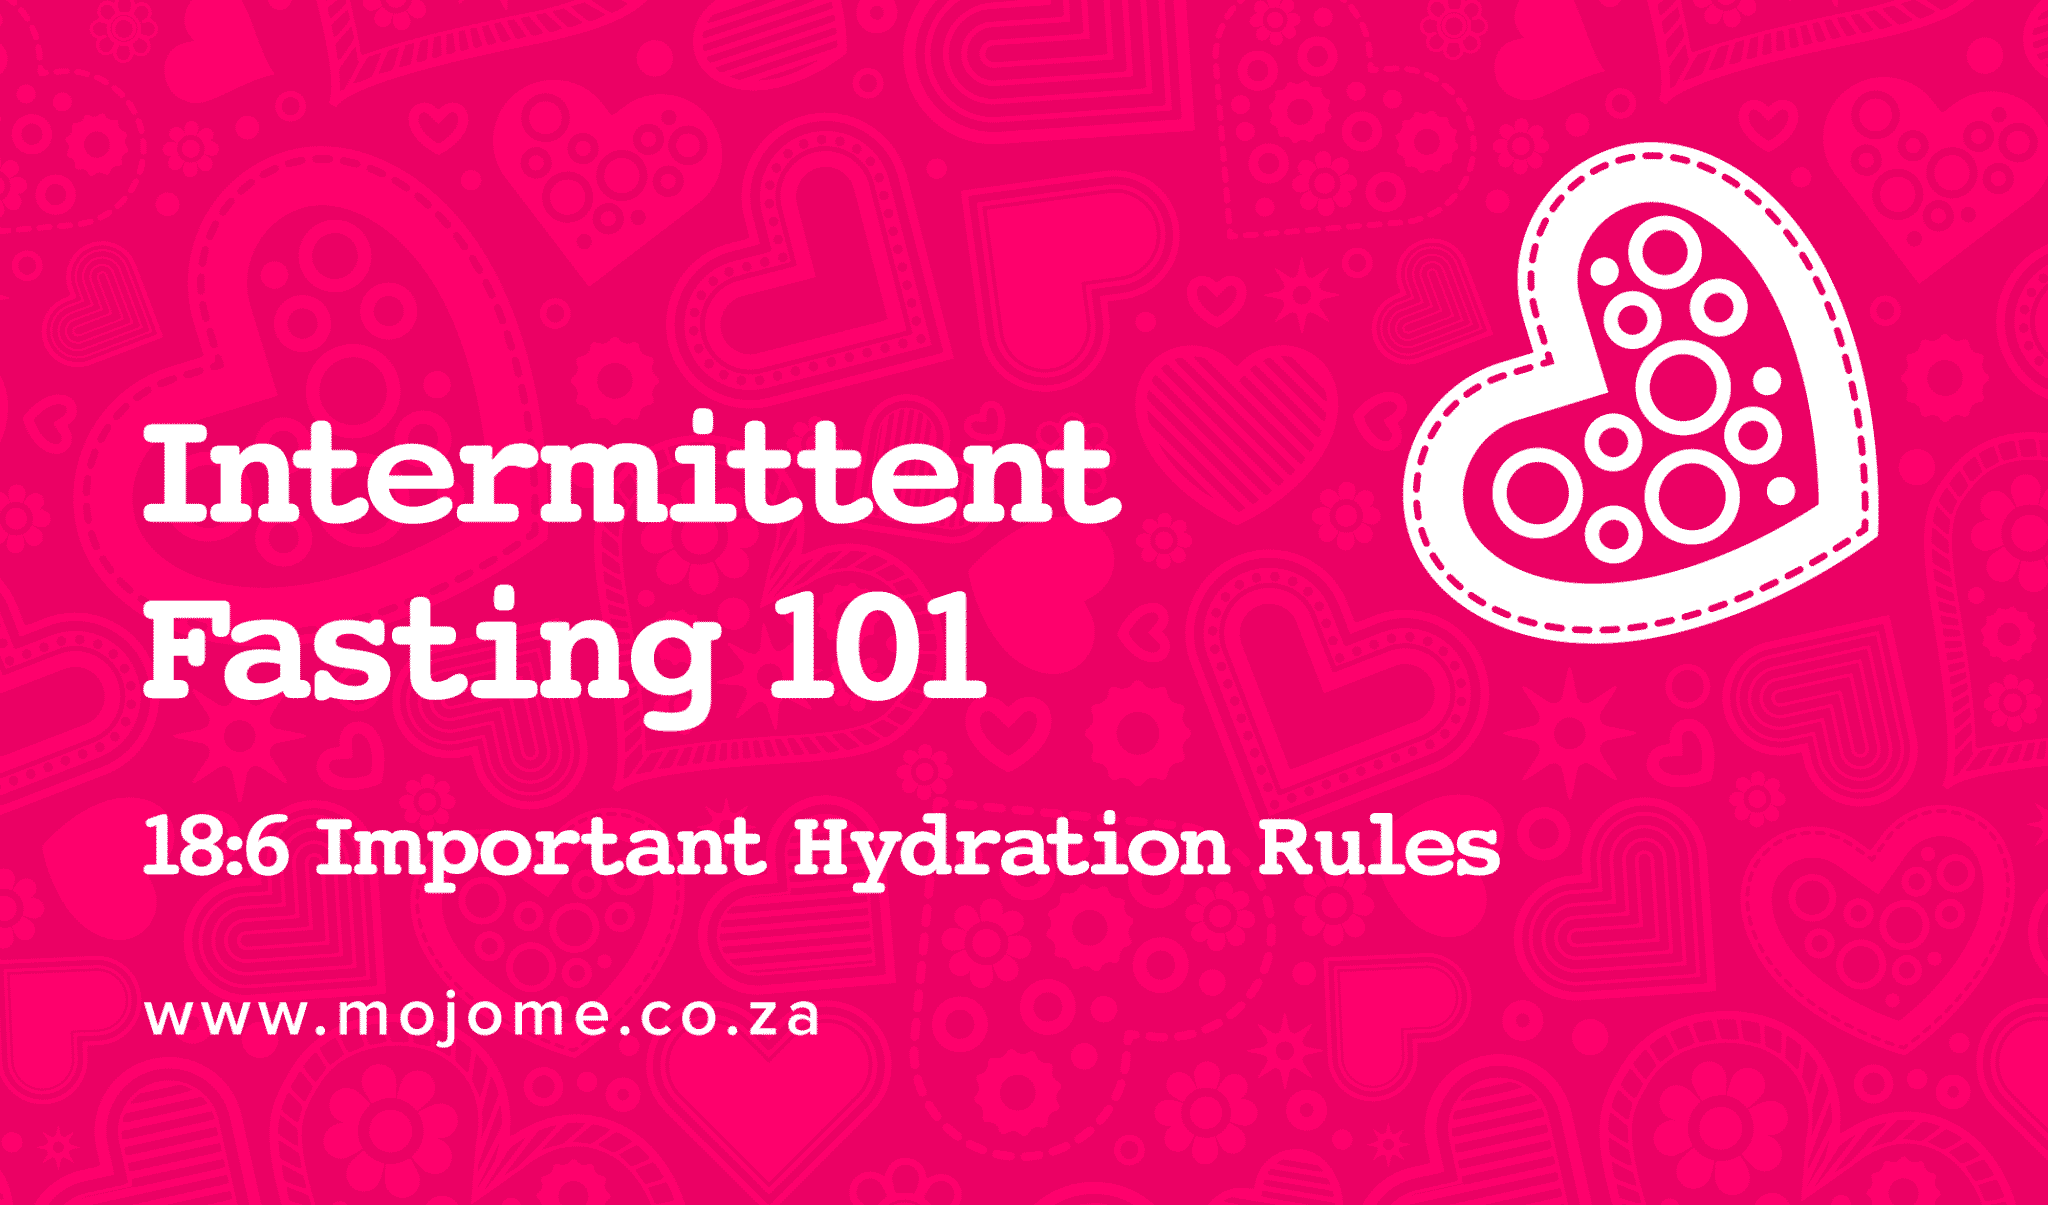 Intermittent Fasting 16:8 Important Hydration Rules